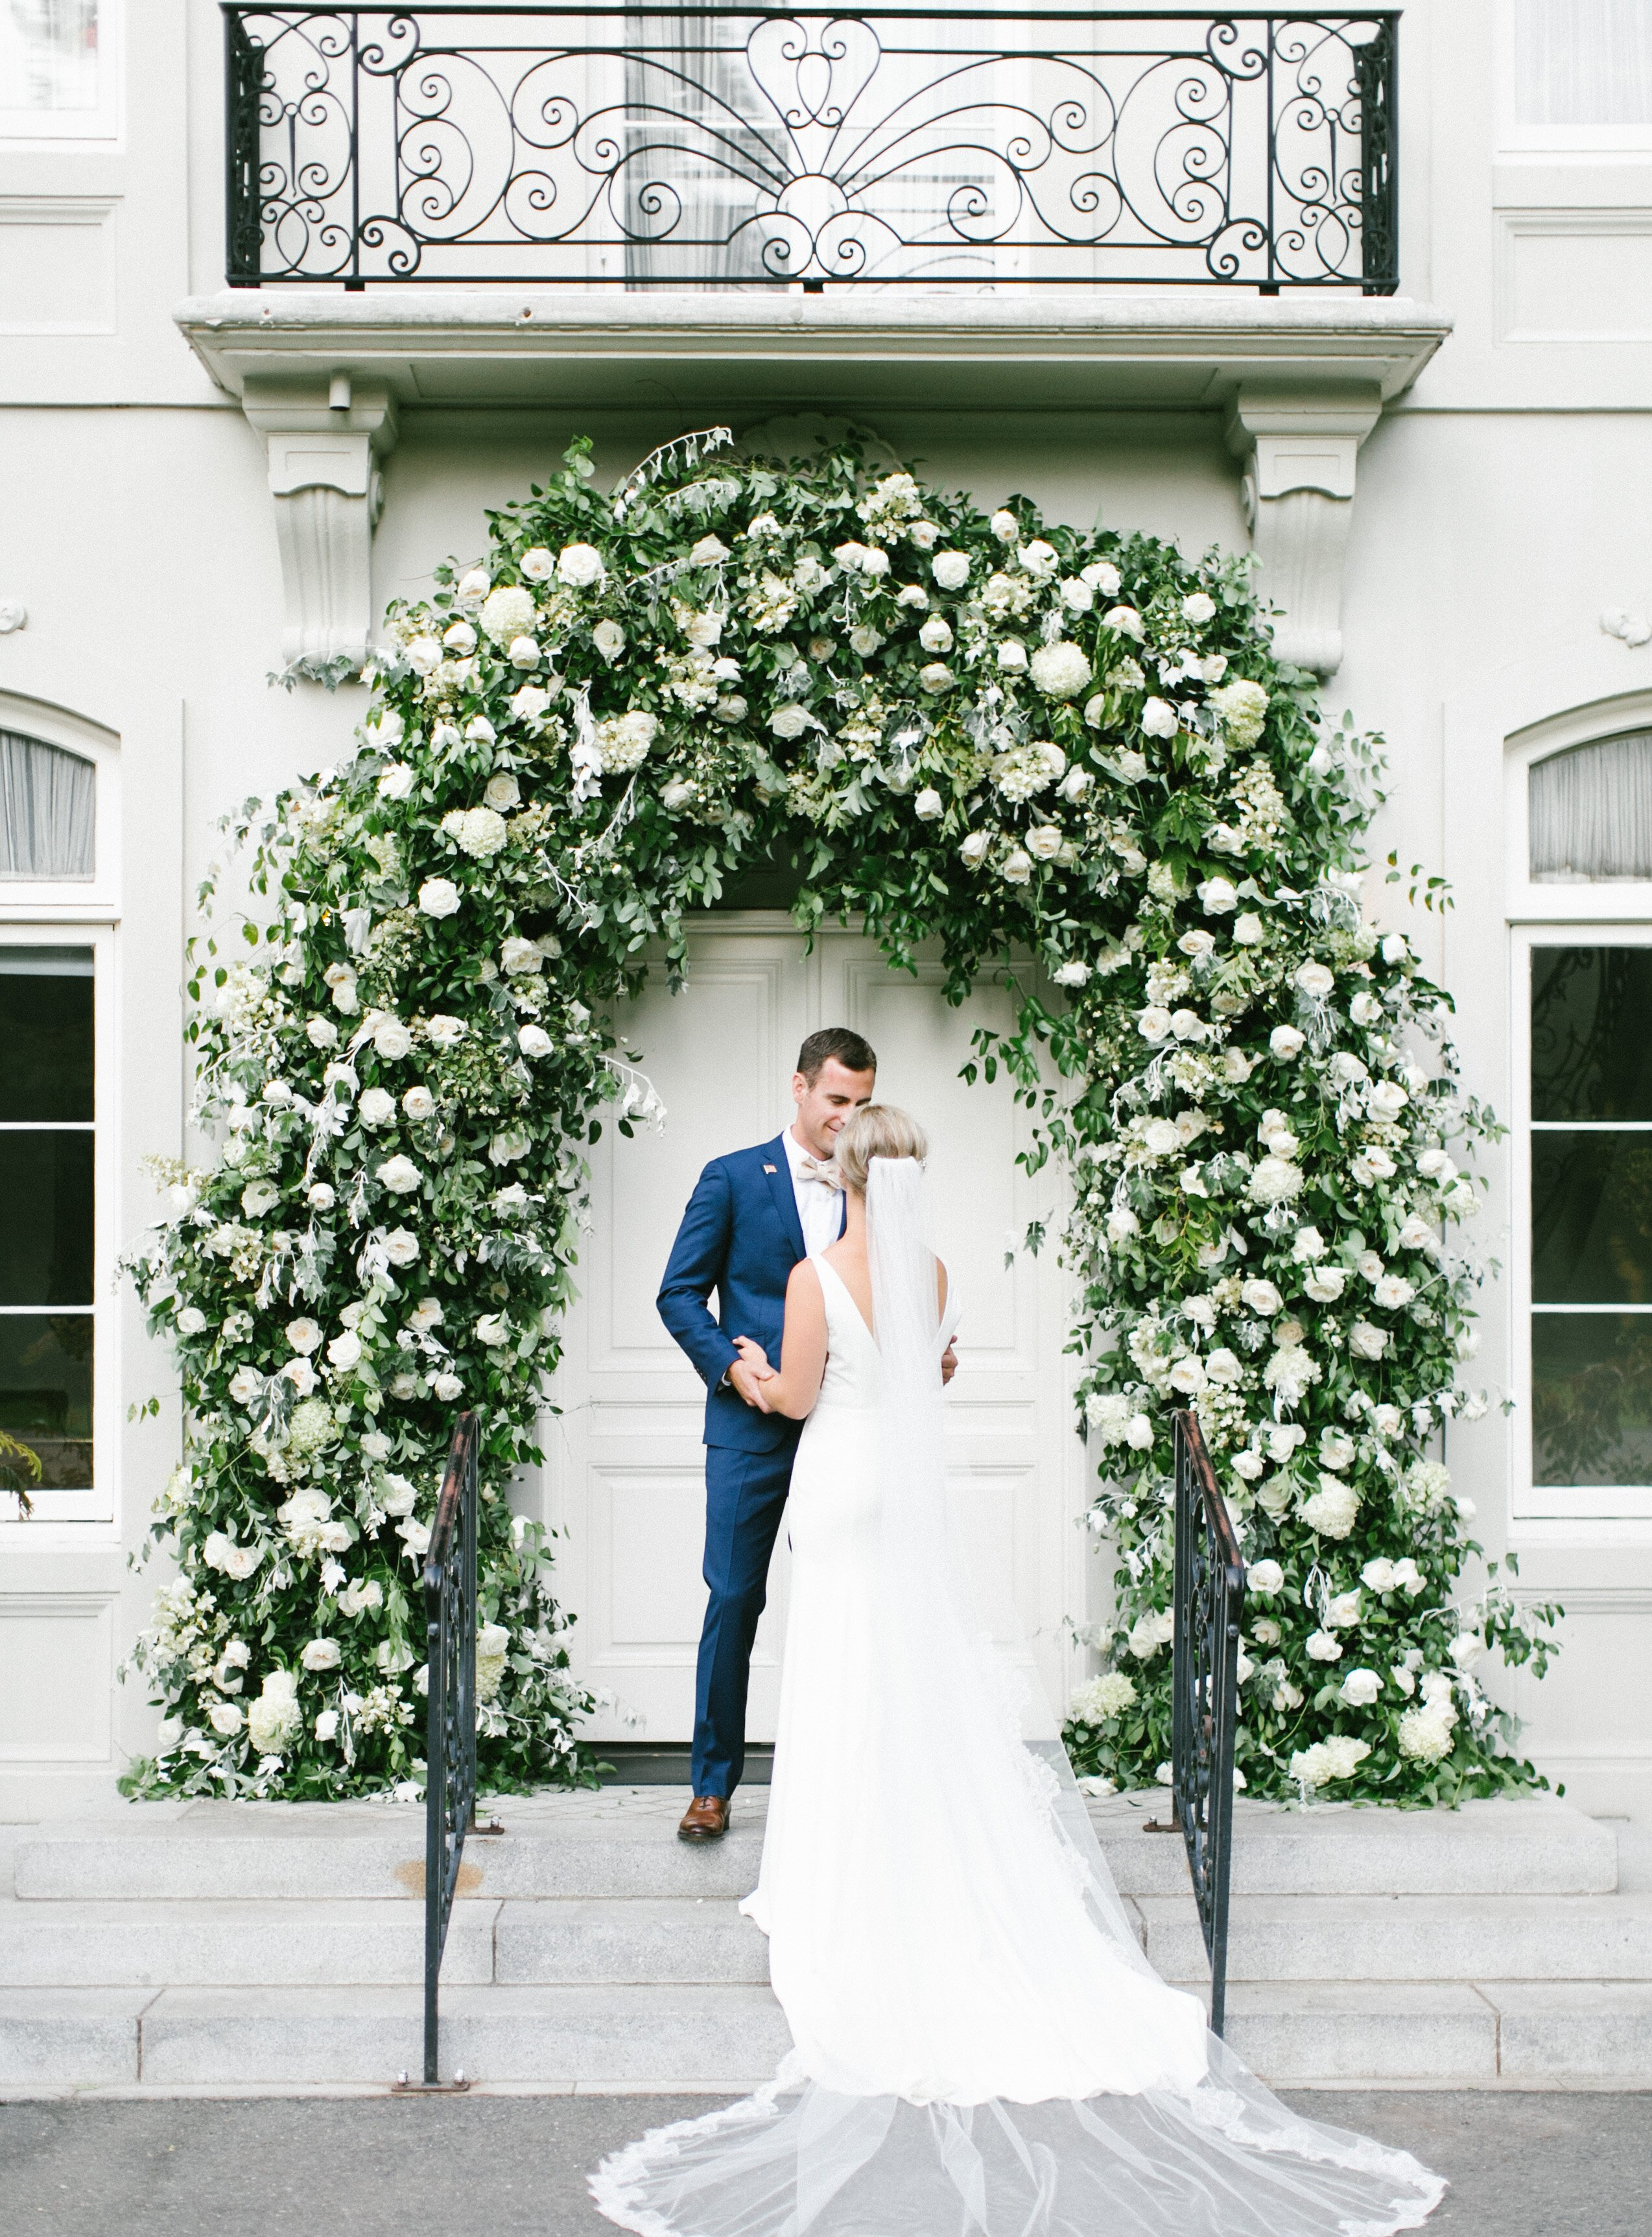 15 New Wedding Trends To Watch For In 2019 According To